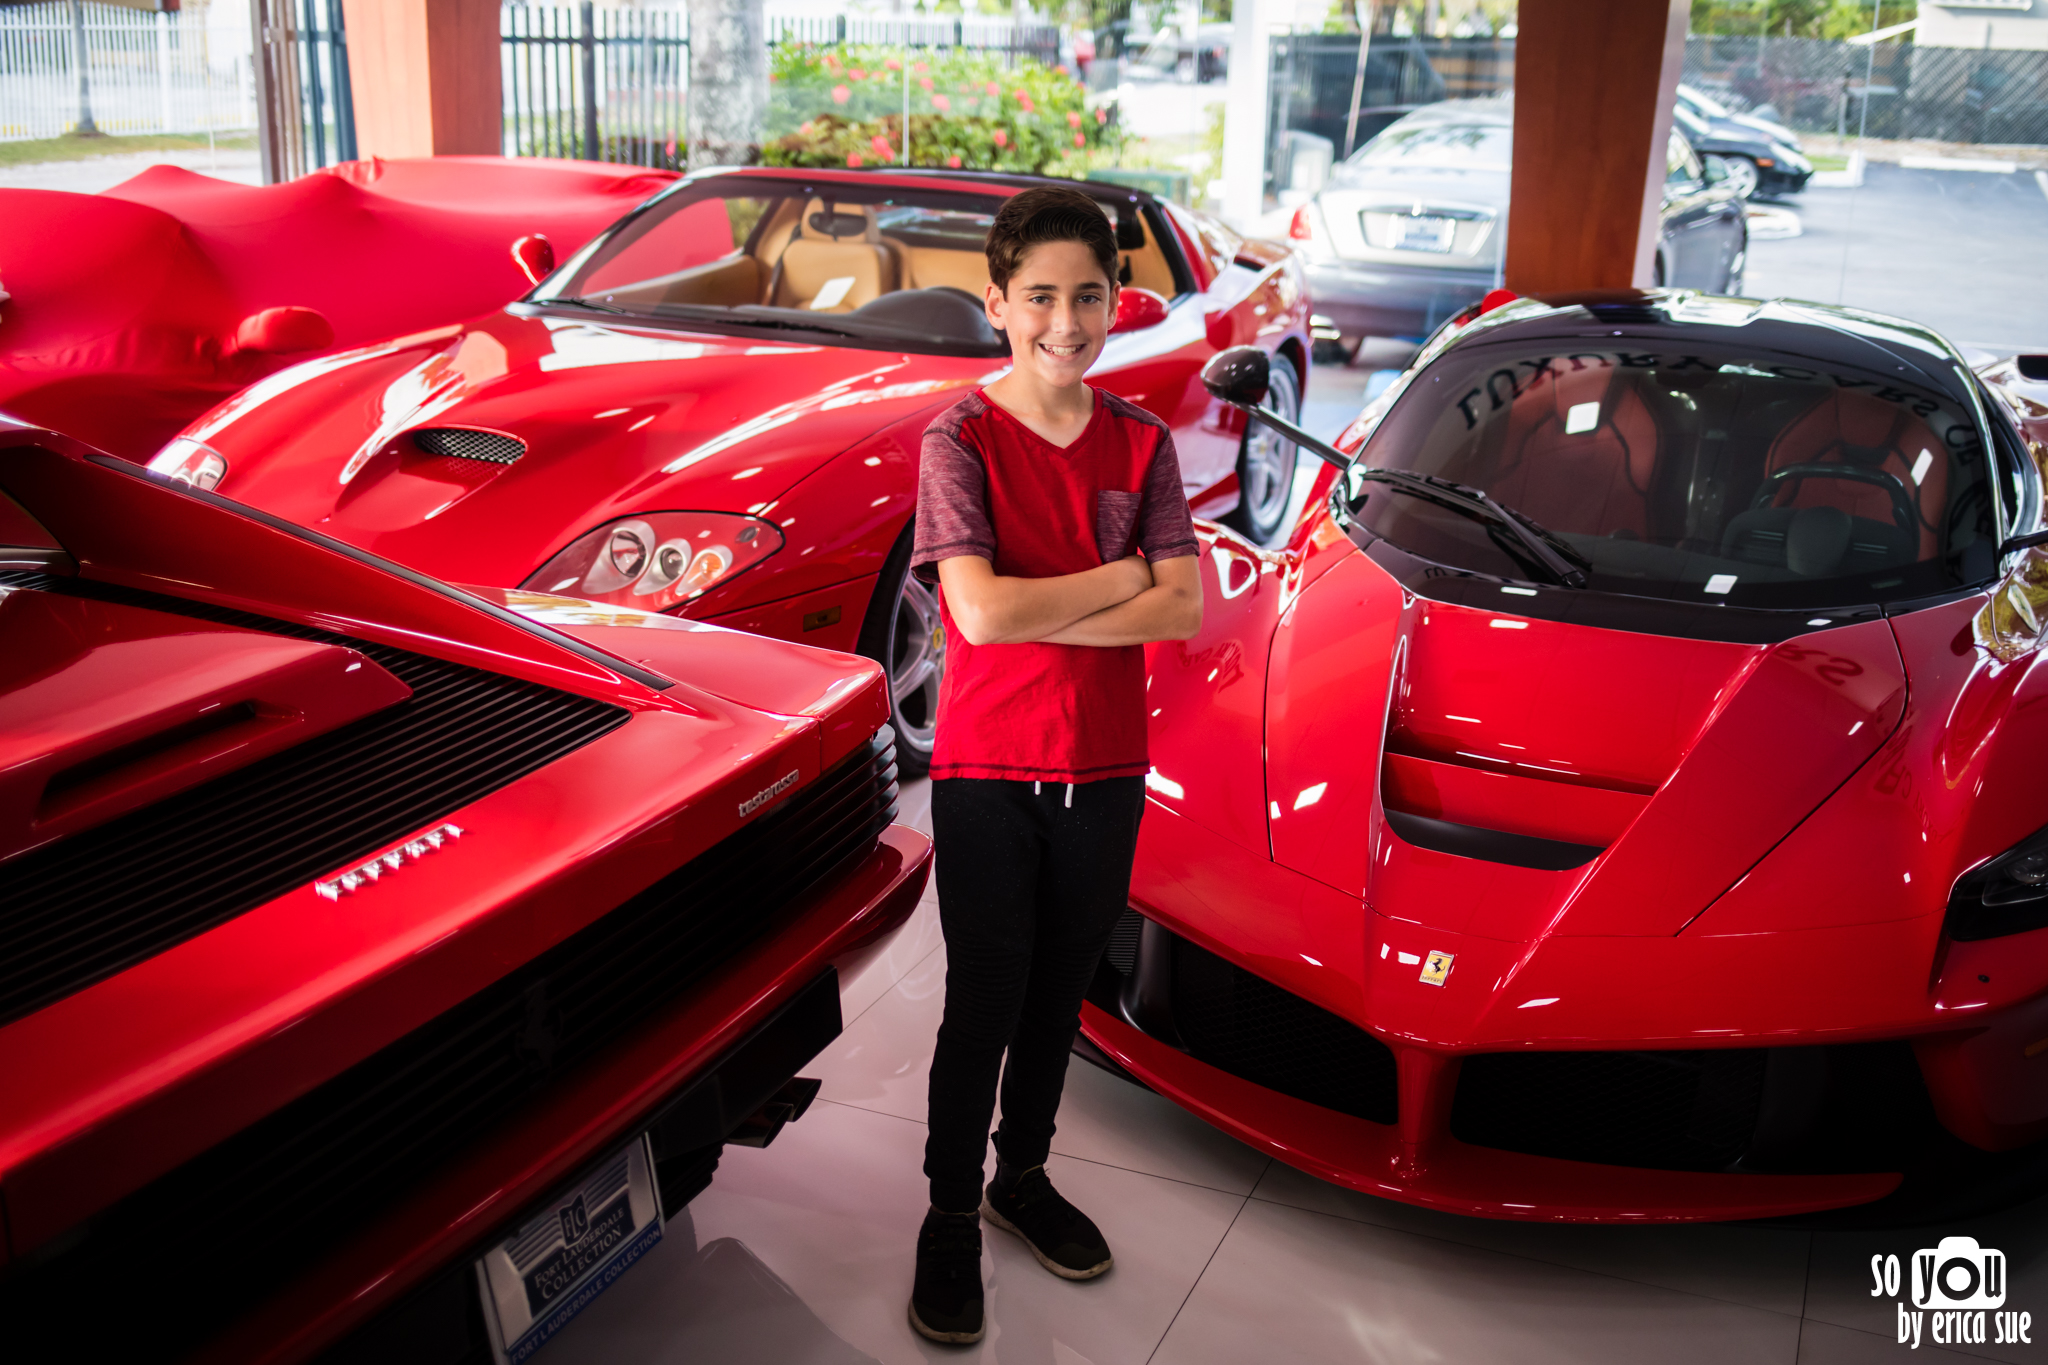 so-you-by-erica-sue-mitzvah-photographer-collection-luxury-car-ft-lauderdale-4892.jpg